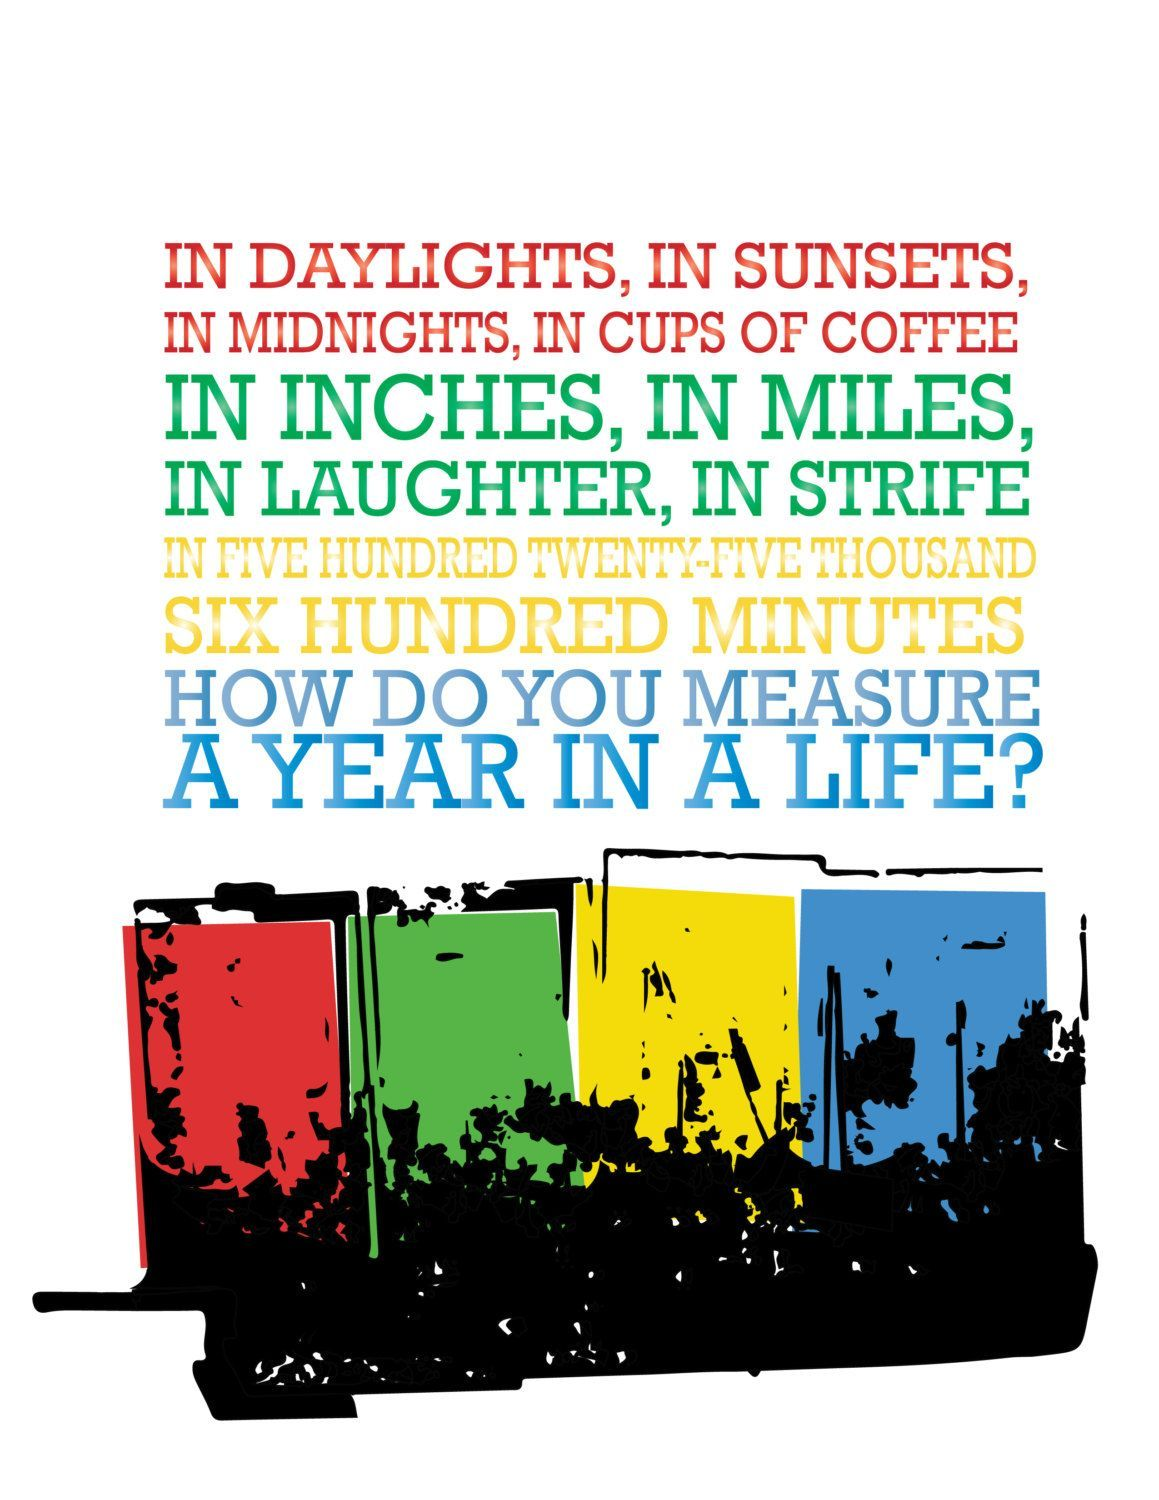 Rent Seasons Of Love Broadway Musical Five Hundred Twenty Five Thousand Six Hundred Minutes Digital File Seasonsof Broadway Quotes Rent Musical Musicals